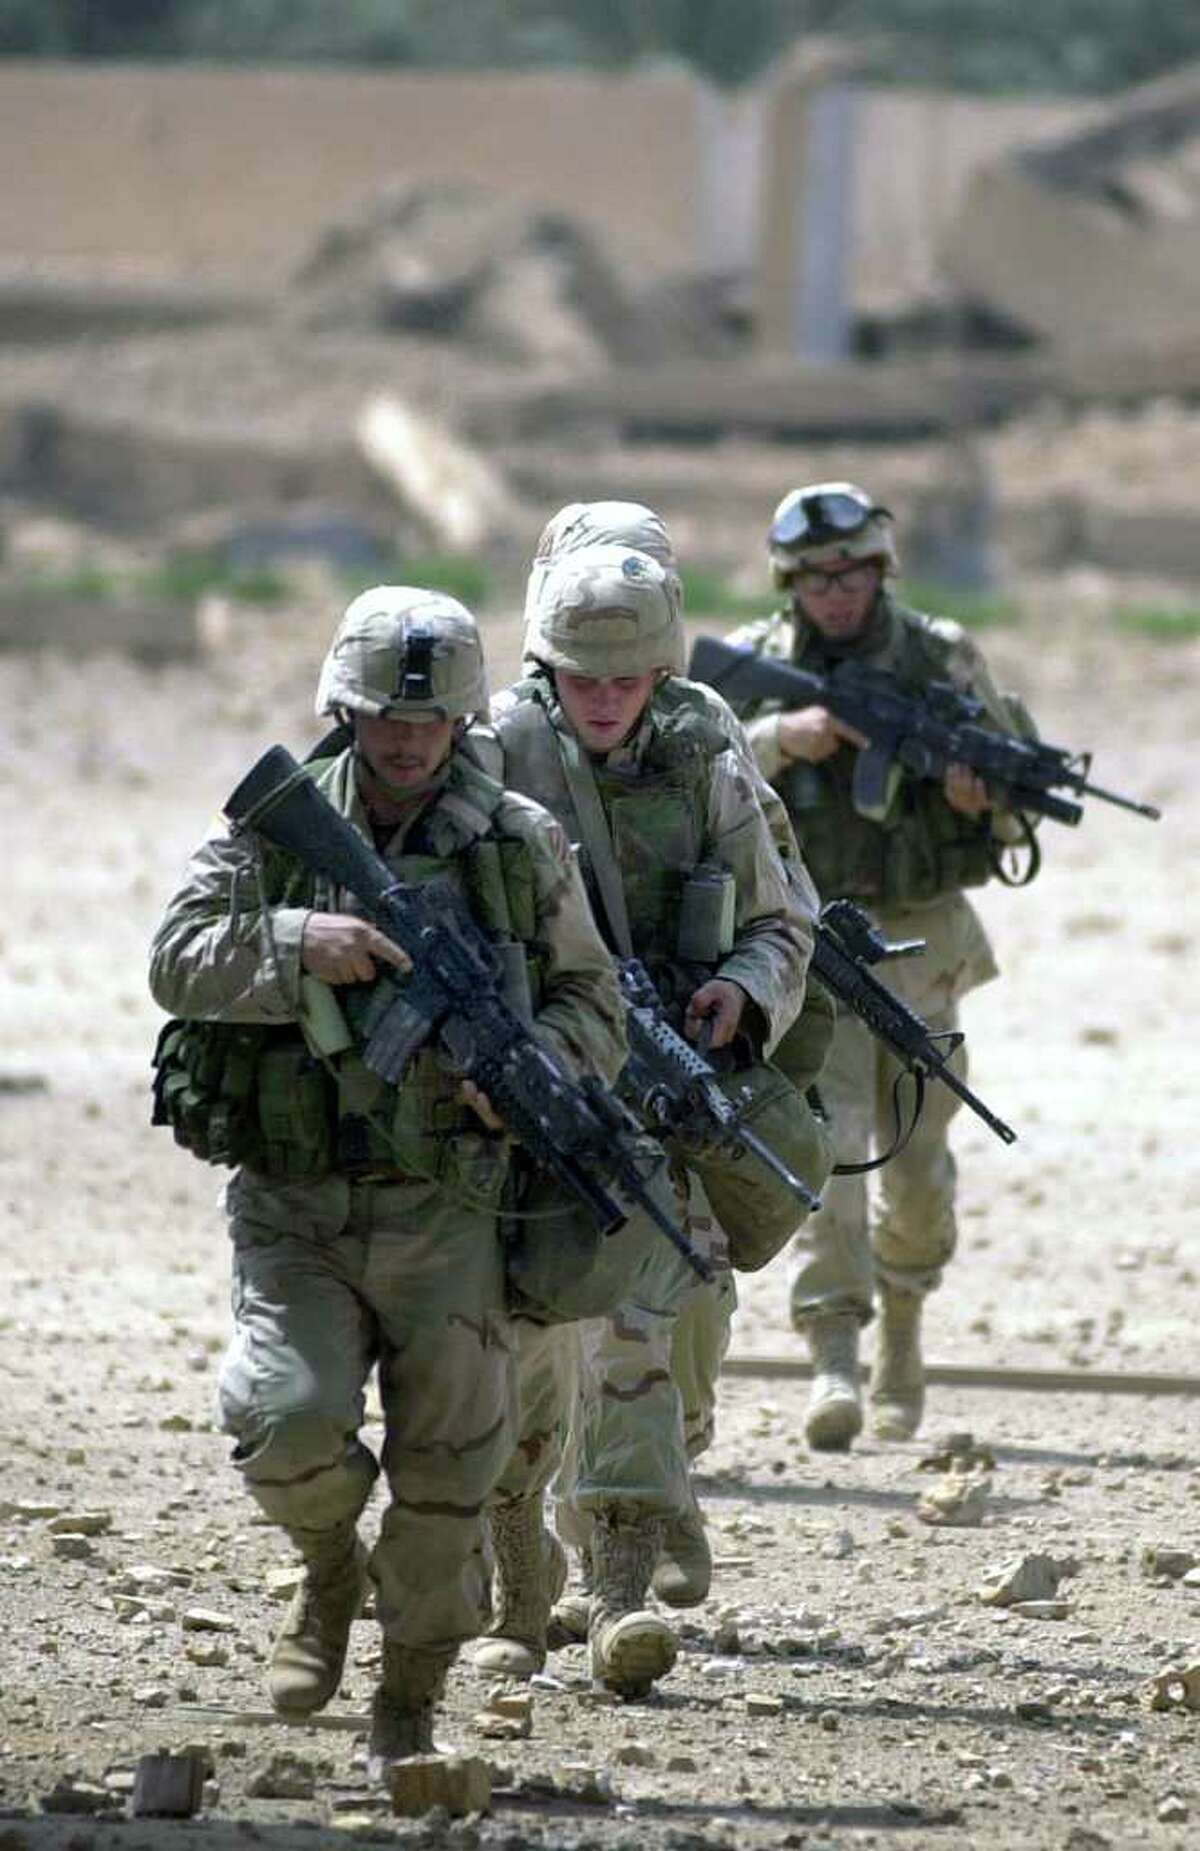 Infantry soldiers run to their position as U.S.troops clear a Special Republican Guard headquarters compound Saturday, April 5, 2003 near Saddam International Airport in Iraq.